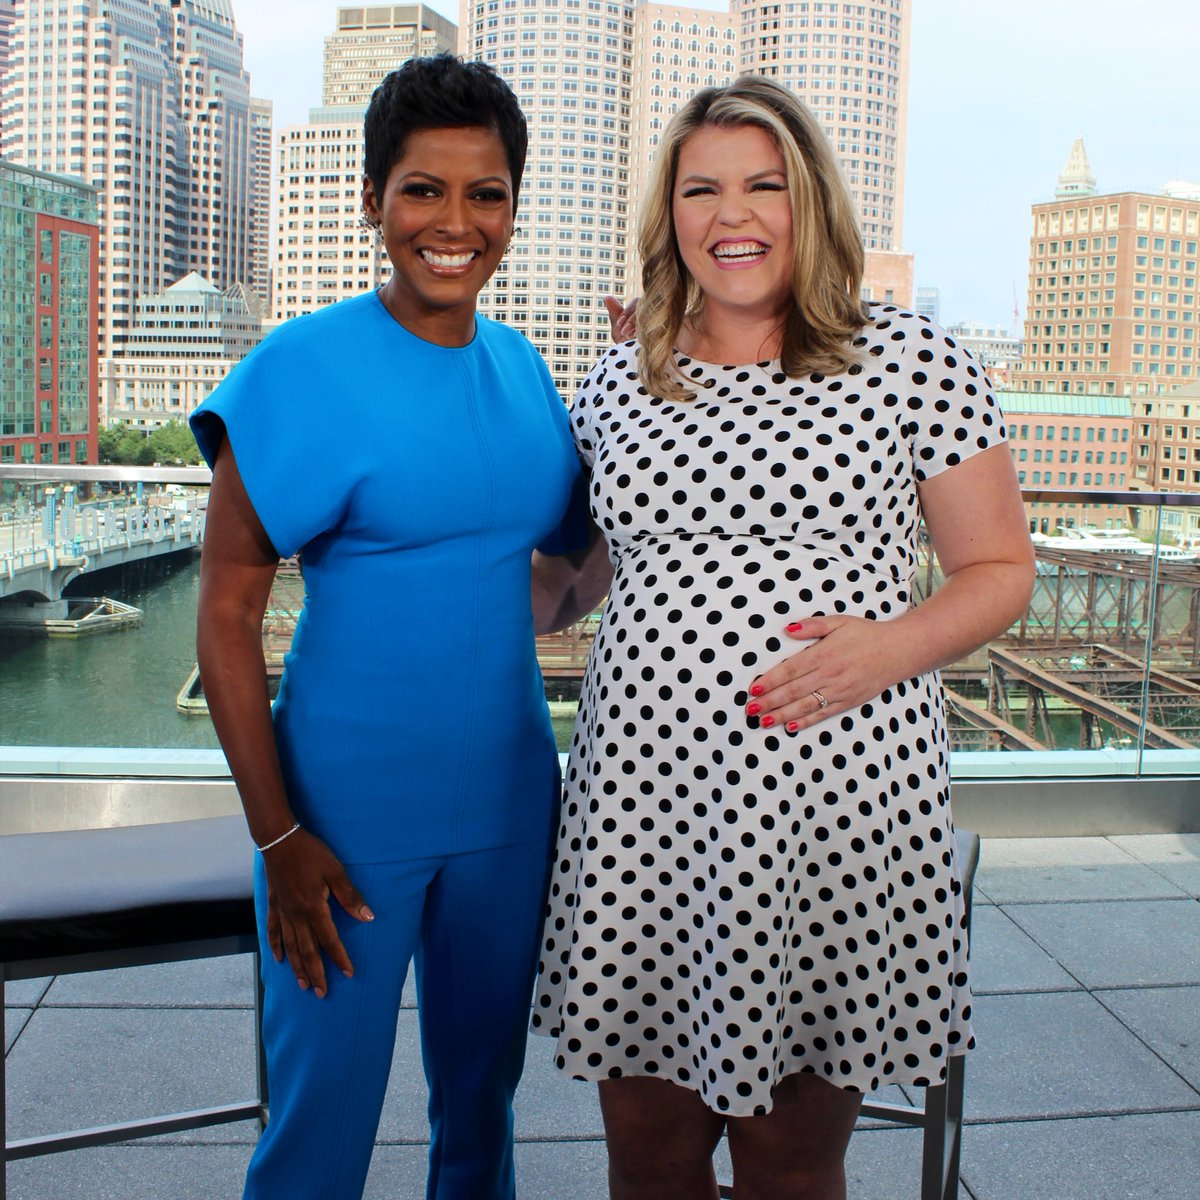 "The ""TamronHall"" show summer tour is winding down. We couldn't end our tour without visiting Boston! @tamronhall had an amazing day chatting with @WCVB, @WMTWTV, @WMUR9, and @MyNBC5. What a fun visit!!! Where do you think we're going next?"